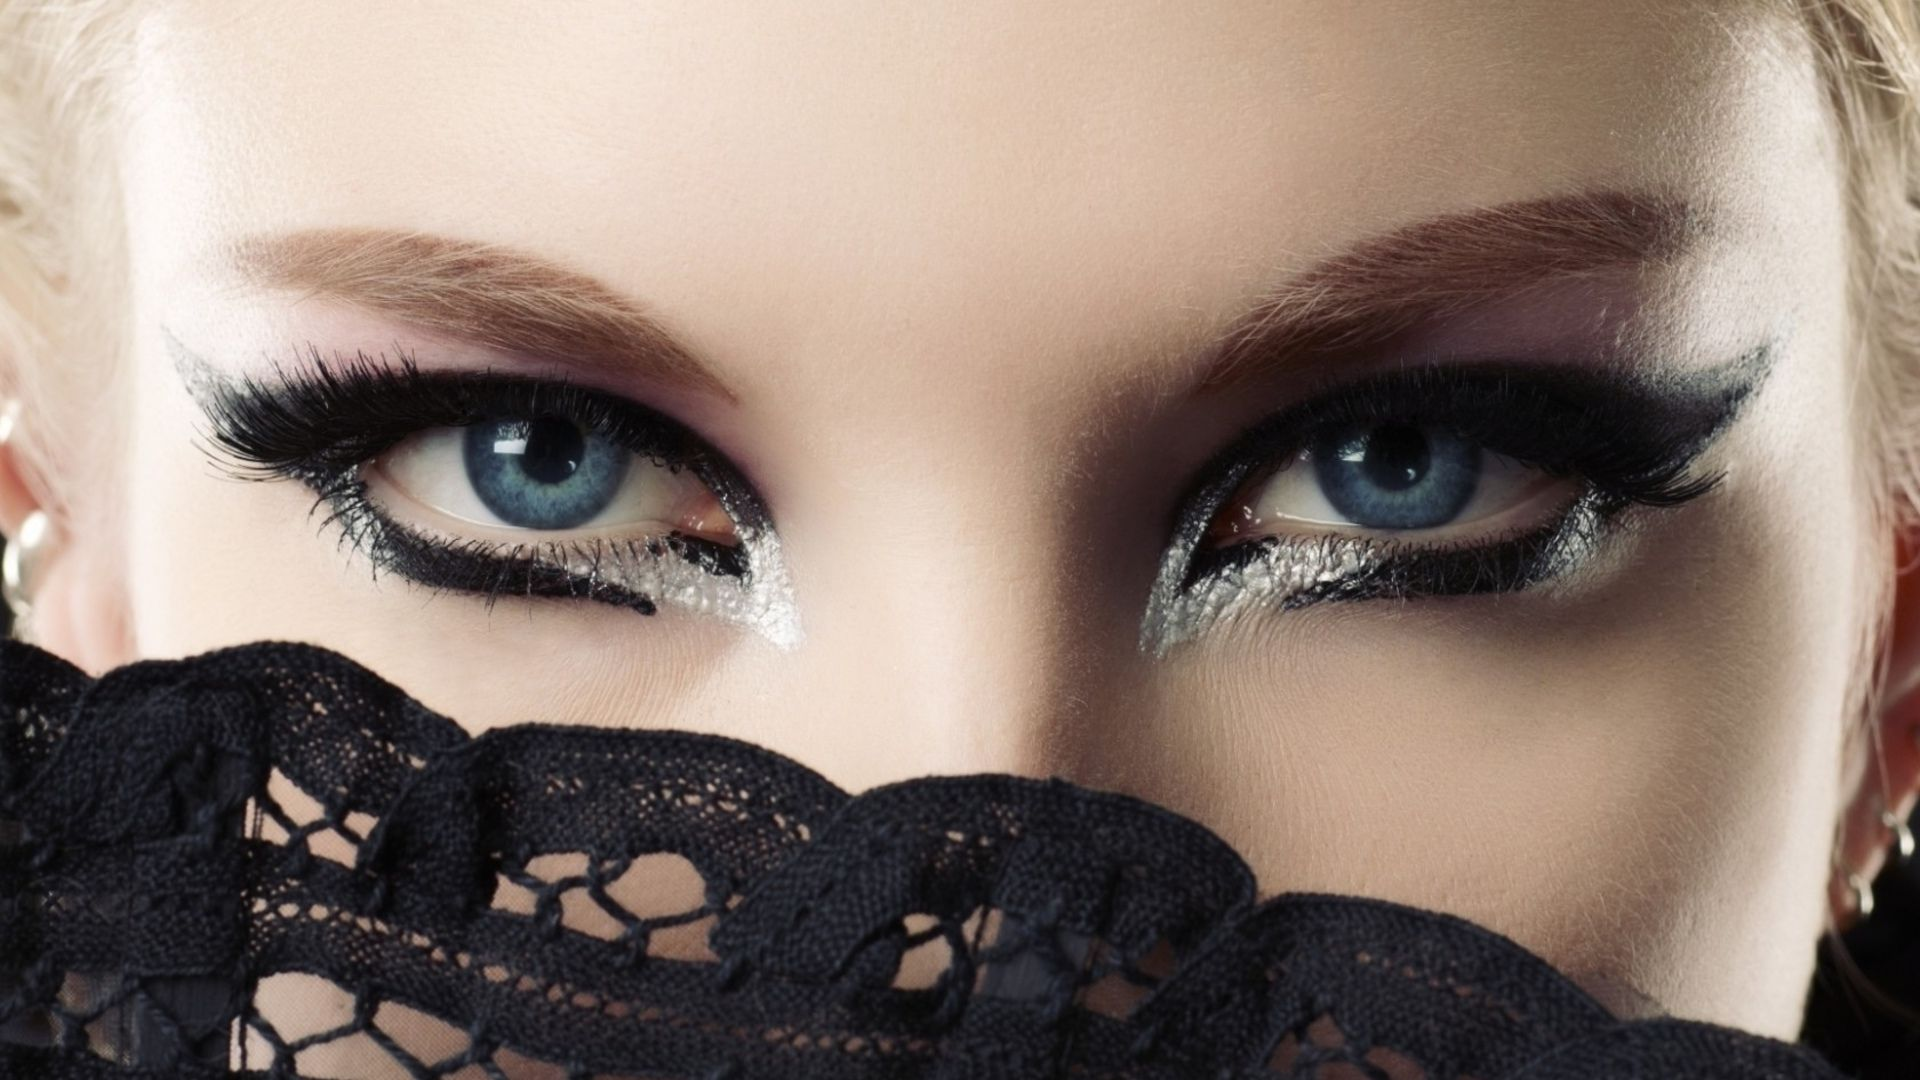 Hd wallpaper eyes - Eyes Desktop Themes Desktop Hd Wallpaper Stock Photos Hd Quality